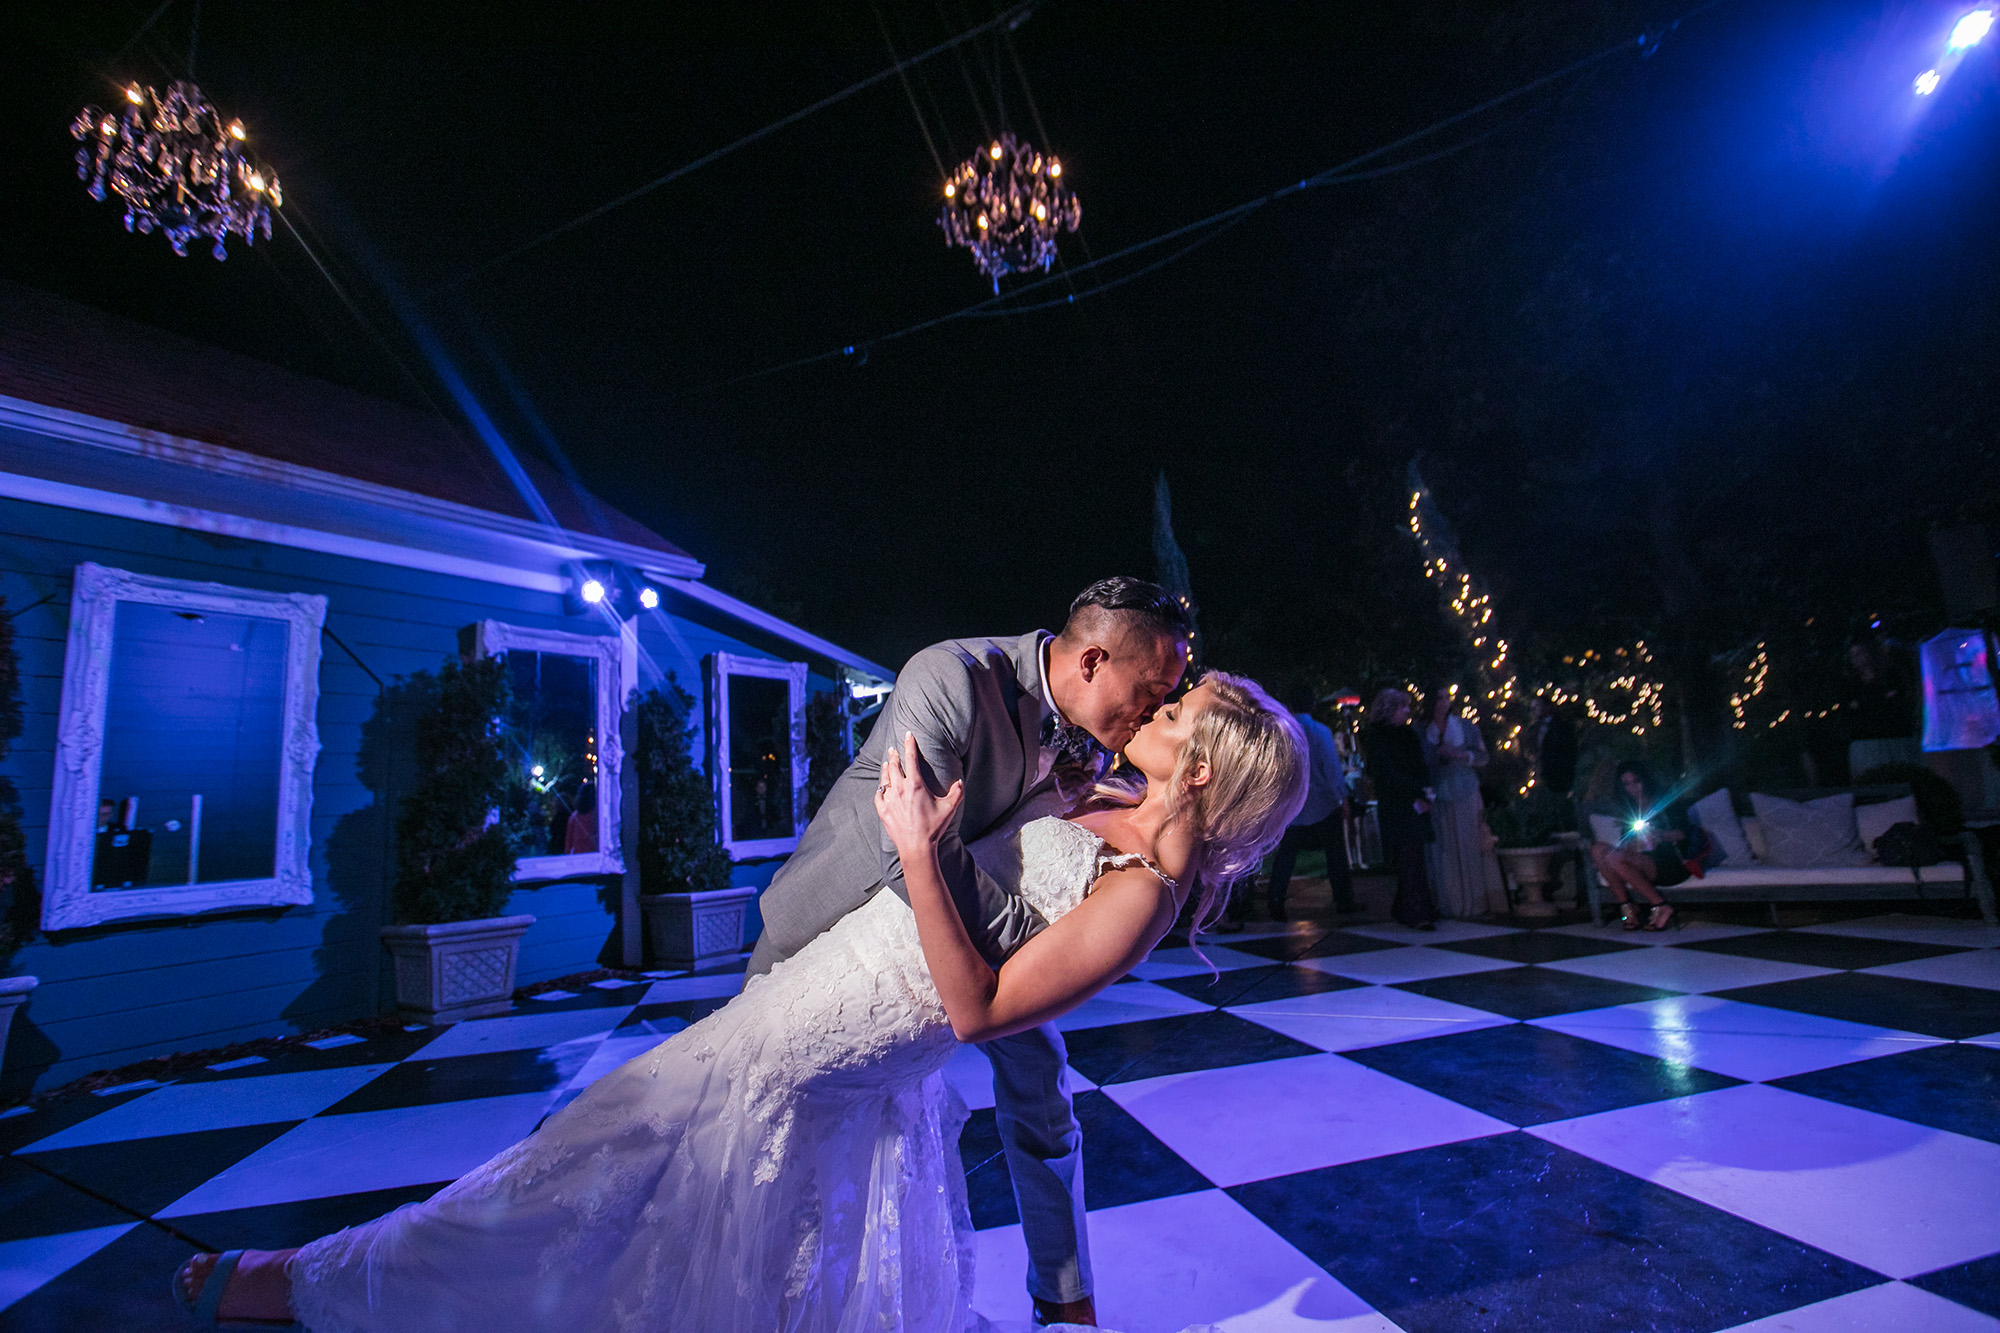 christmas-house-checkered-dance-floor-bride-groom-carrie-vines.jpg